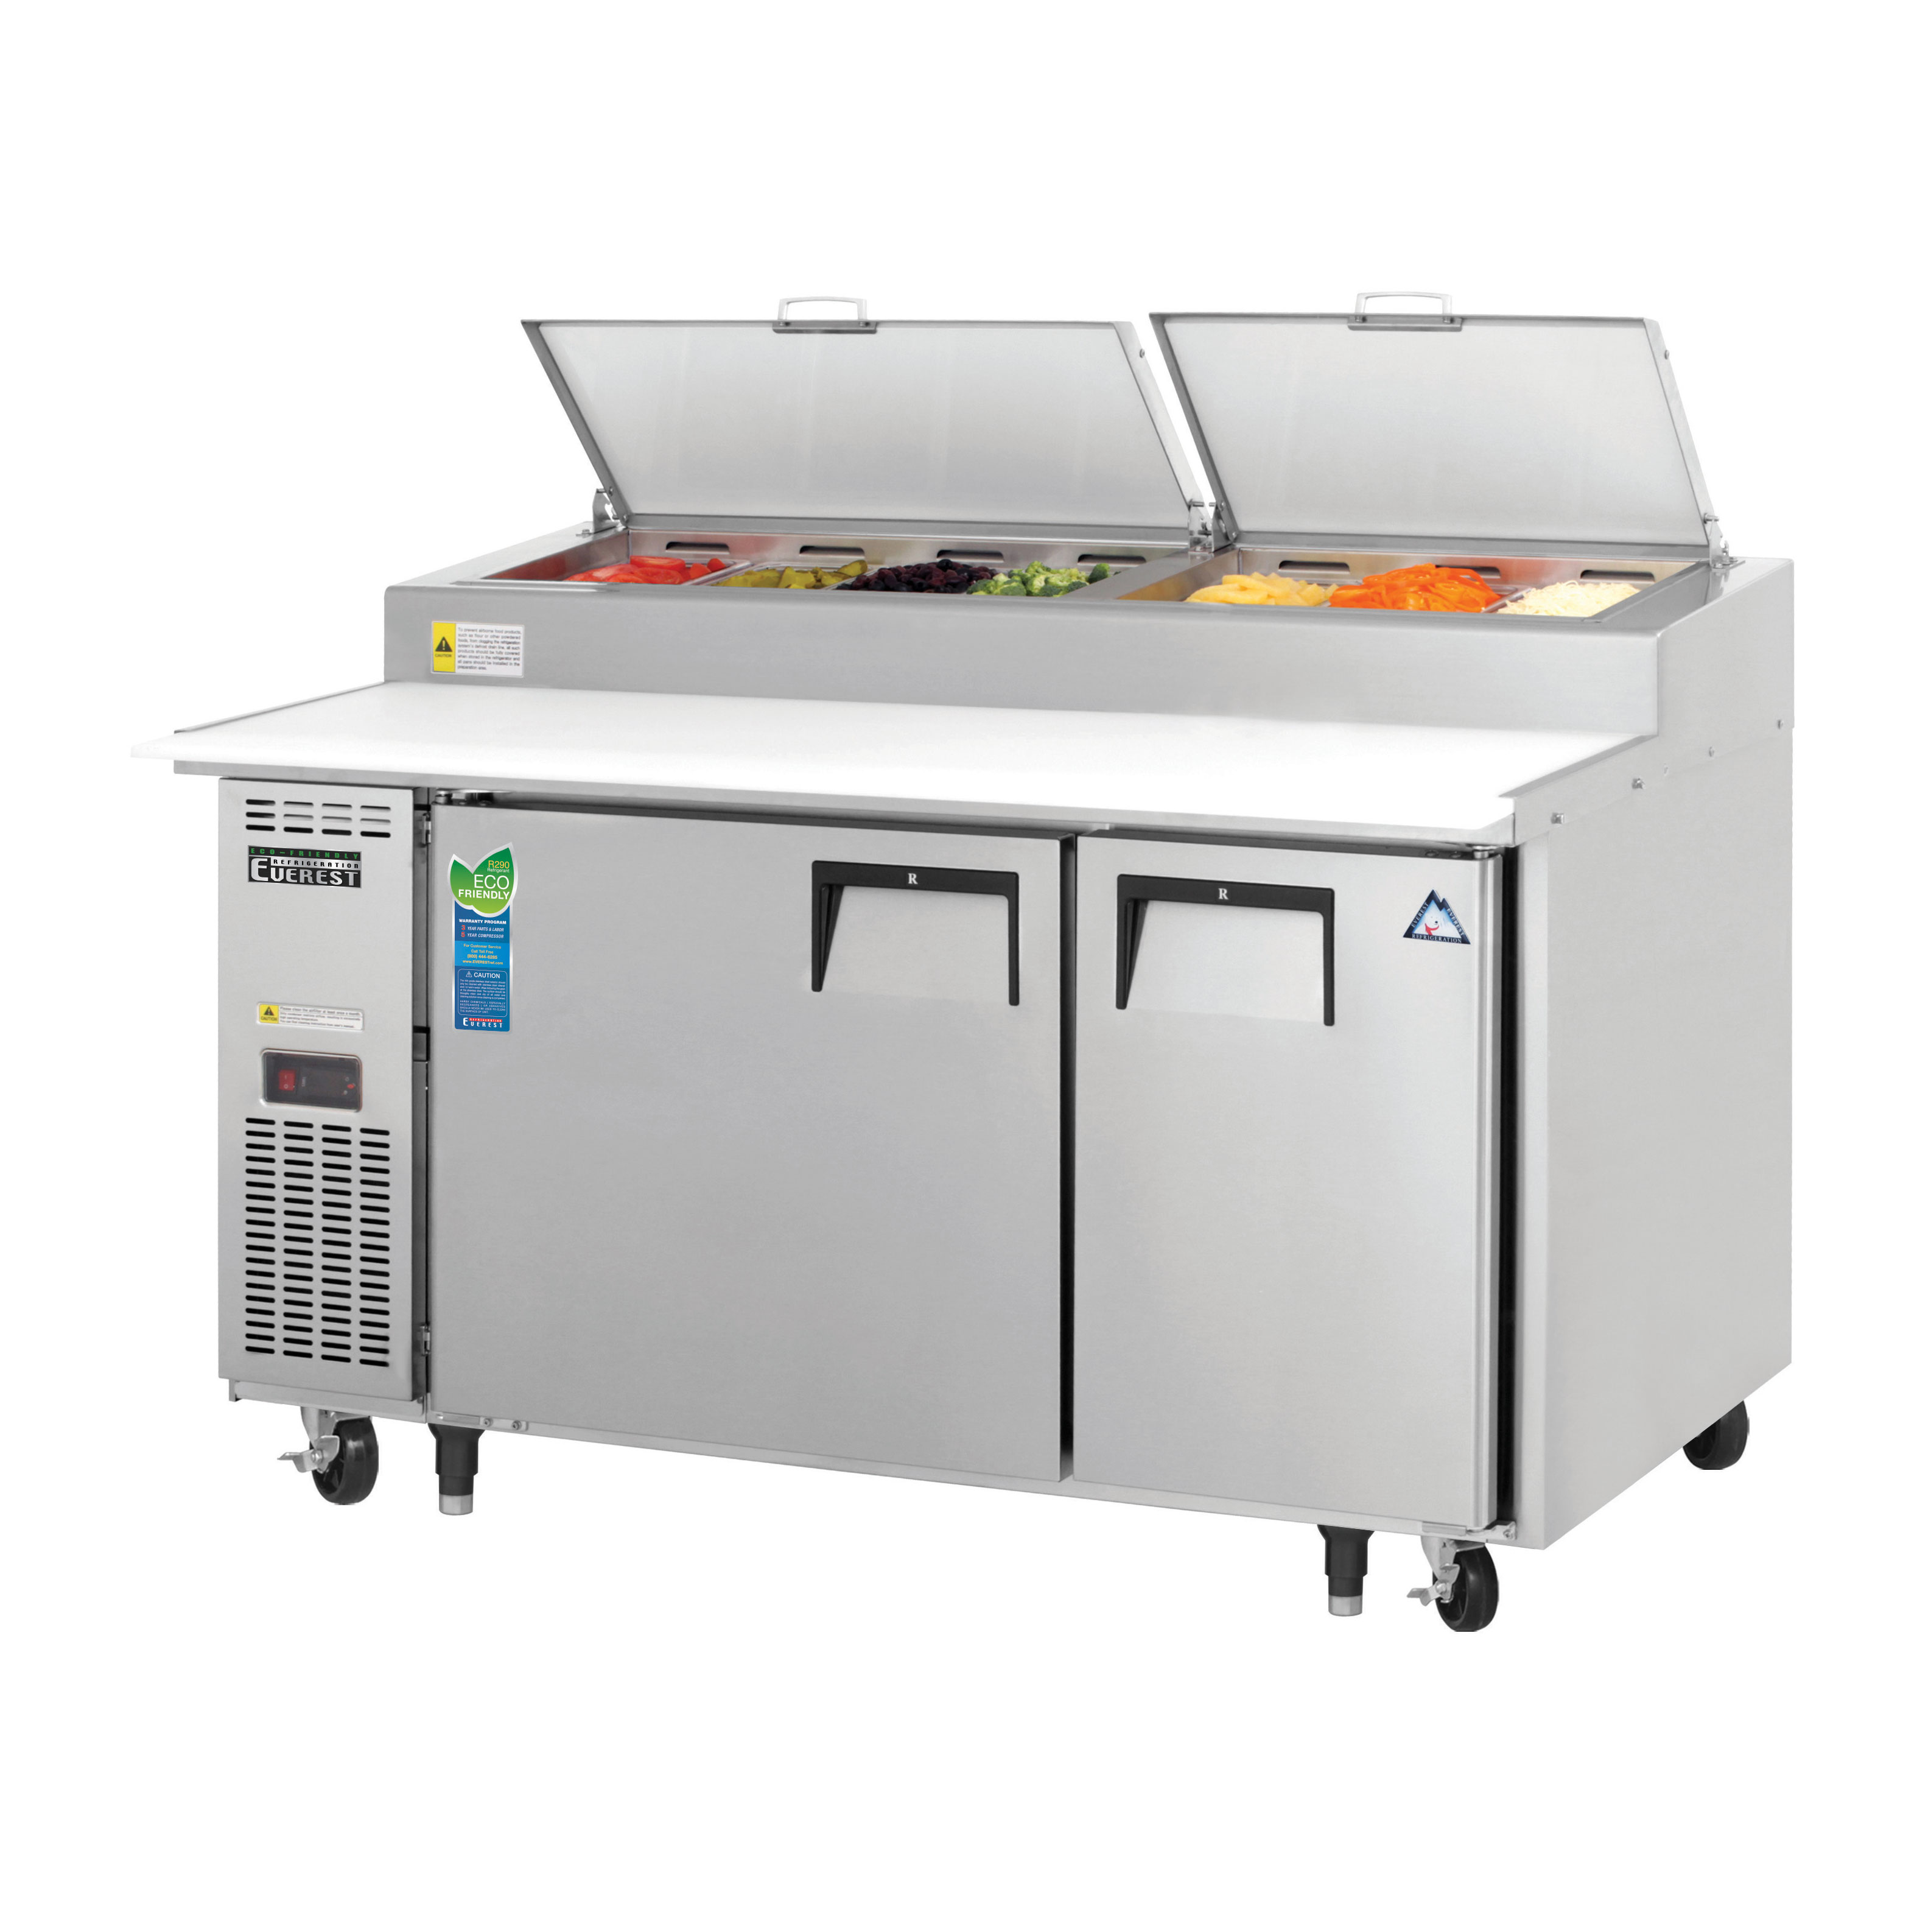 Everest Refrigeration EPPSR2 refrigerated counter, pizza prep table